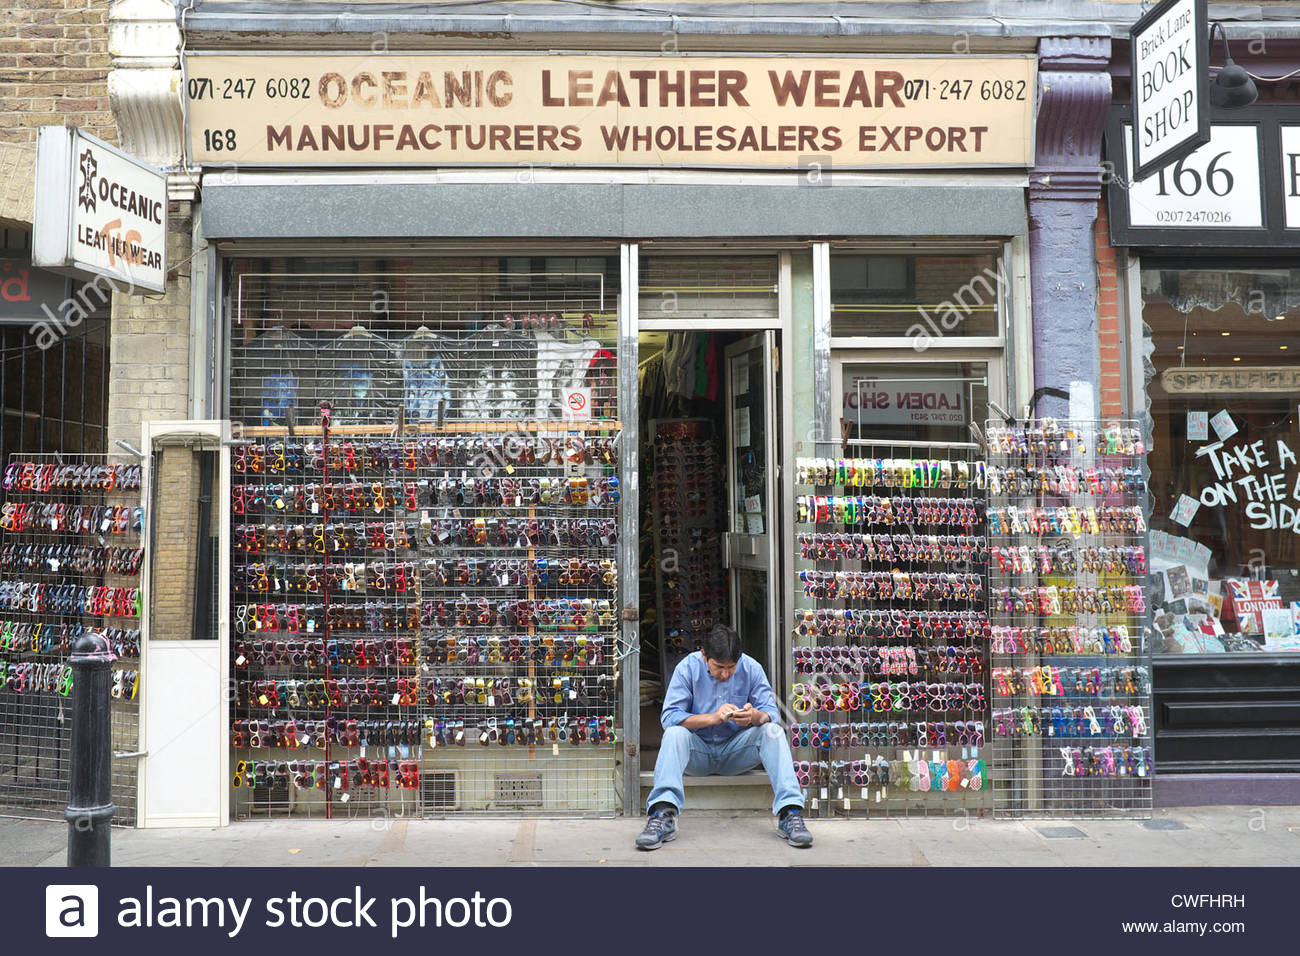 Shop in Brick Lane, selling sunglasses. London, UK. - Stock Image